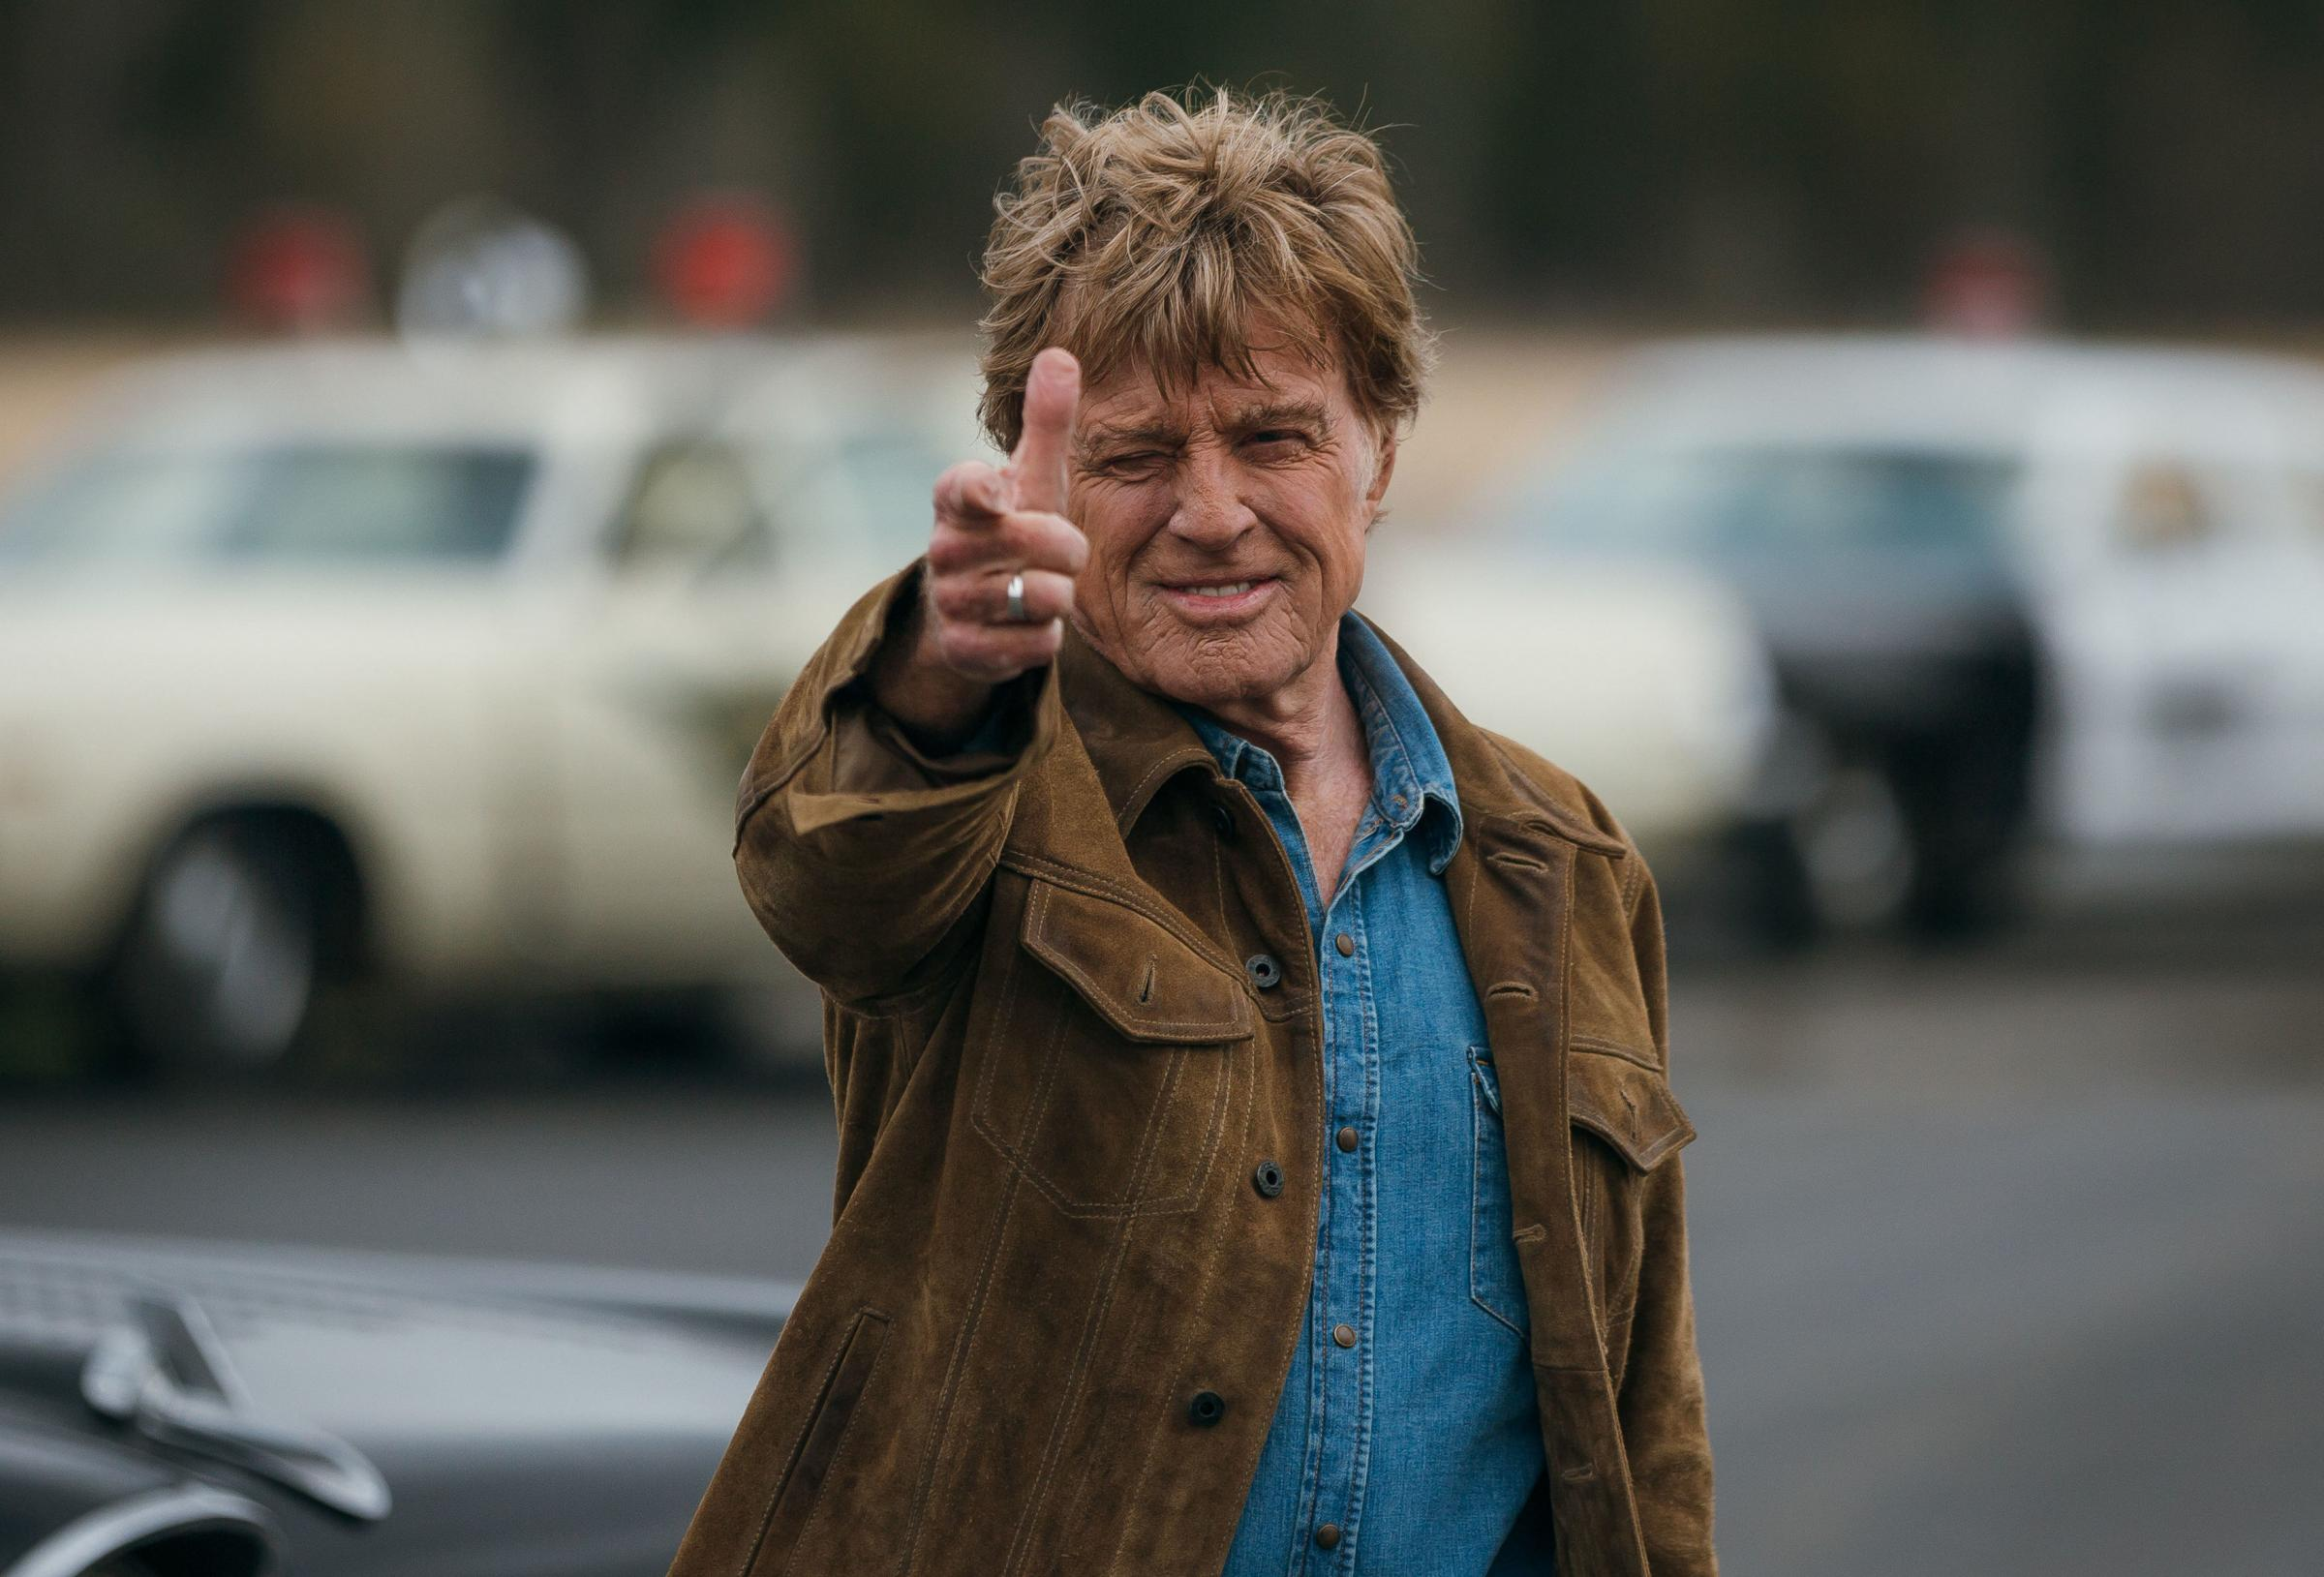 Robert Redford oozes natural charisma as a man finding peace in his twilight years